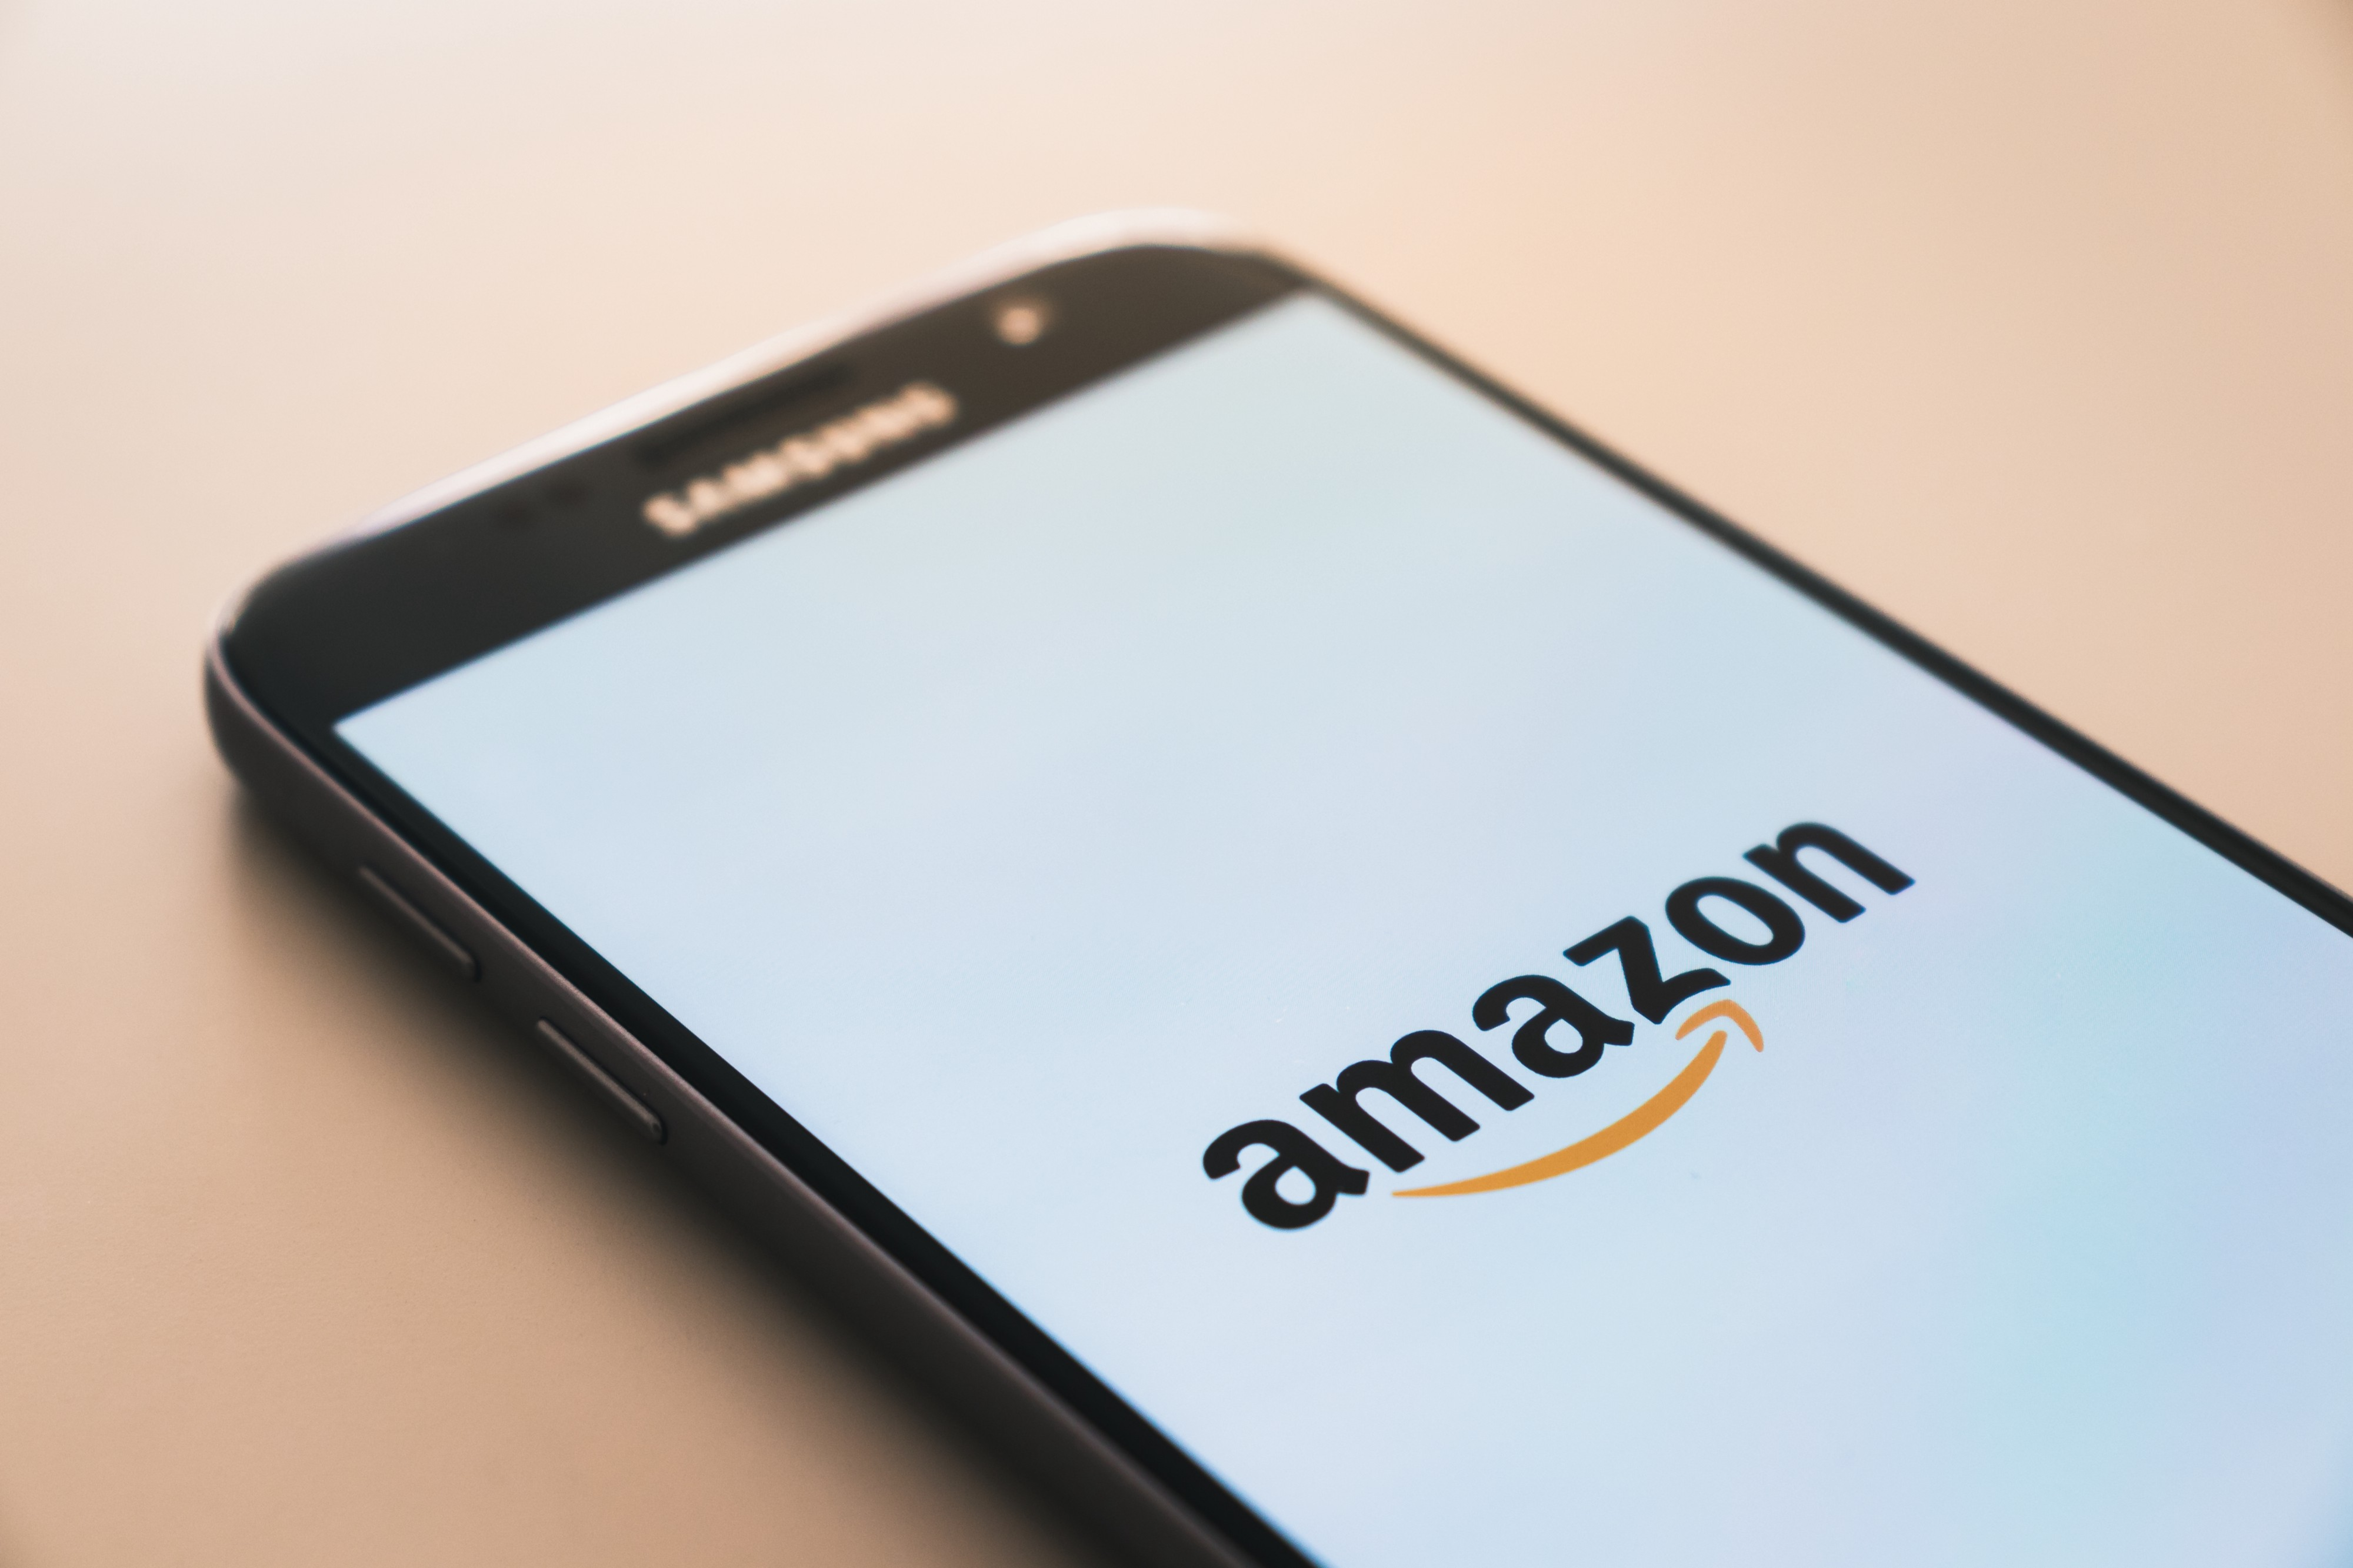 The Amazon app displayed on a smartphone